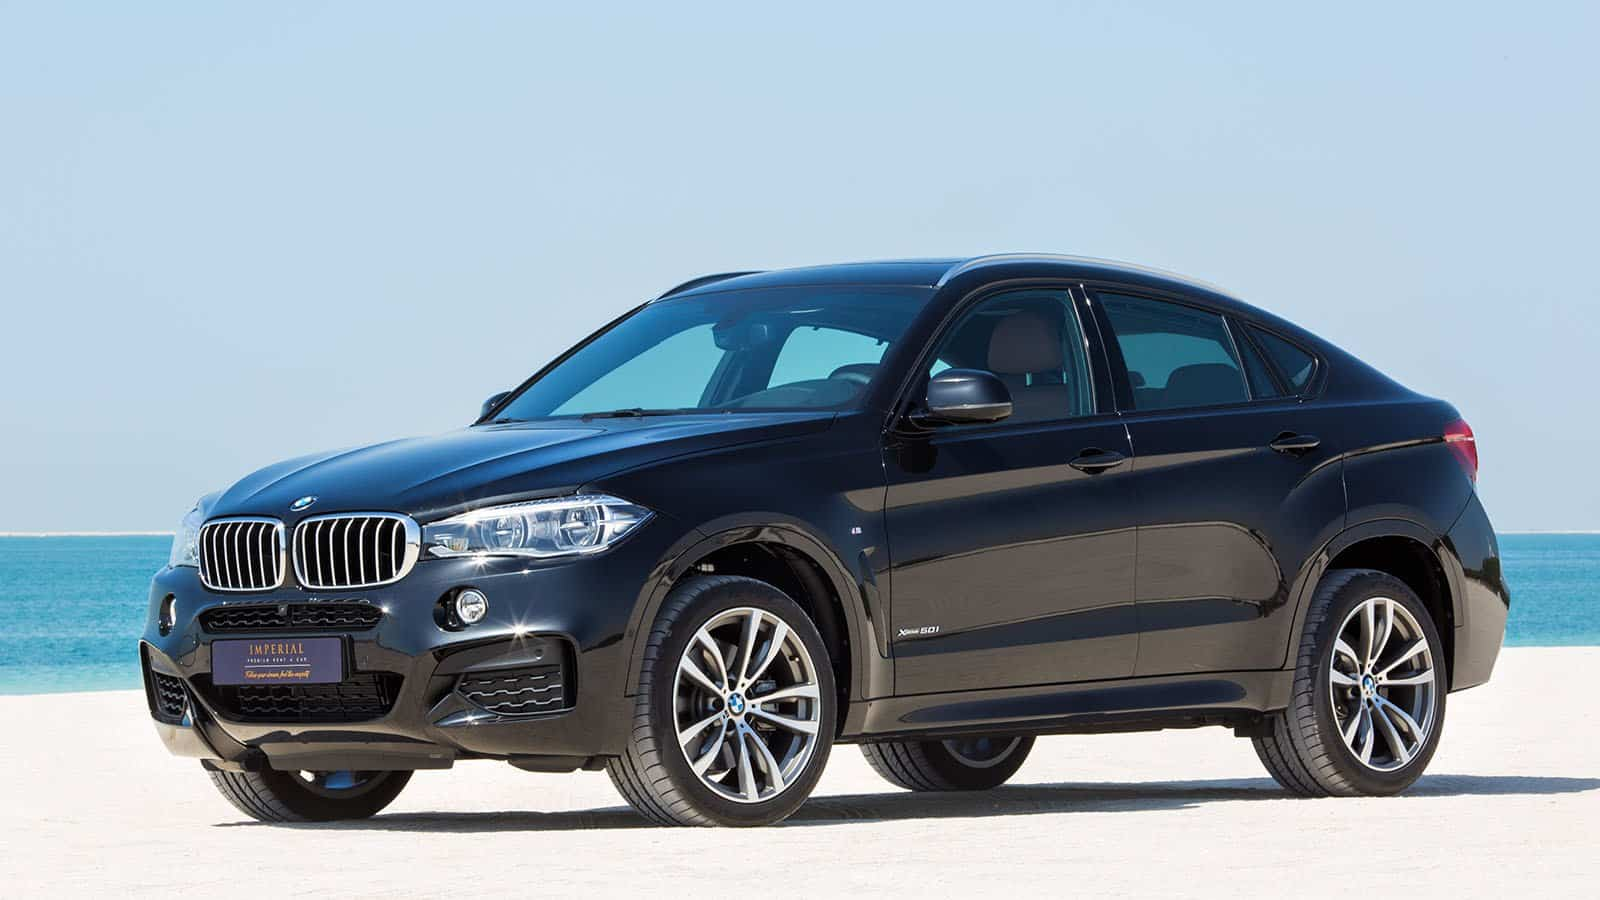 Bmw X6 M Plus Sport Imperial Premium Rent A Car Dubai